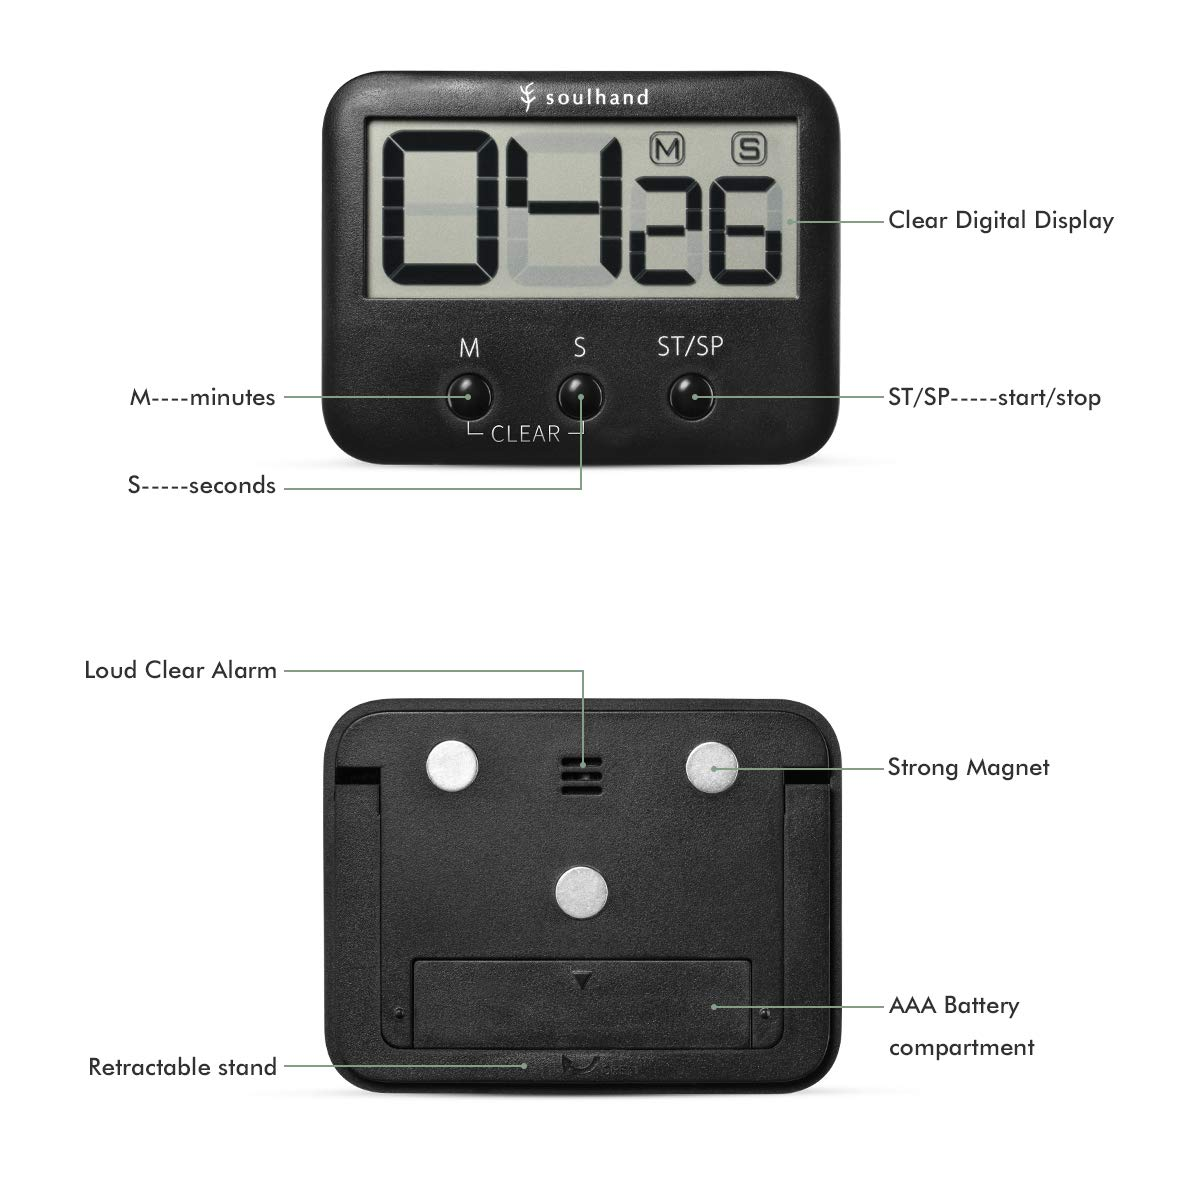 Big Digits Loud Alarm magnetic Backing Stand With Large LCD Screen For Cooking Baking Sports Game Office Soulhand Digital Kitchen Timer,Cooking Timer Black